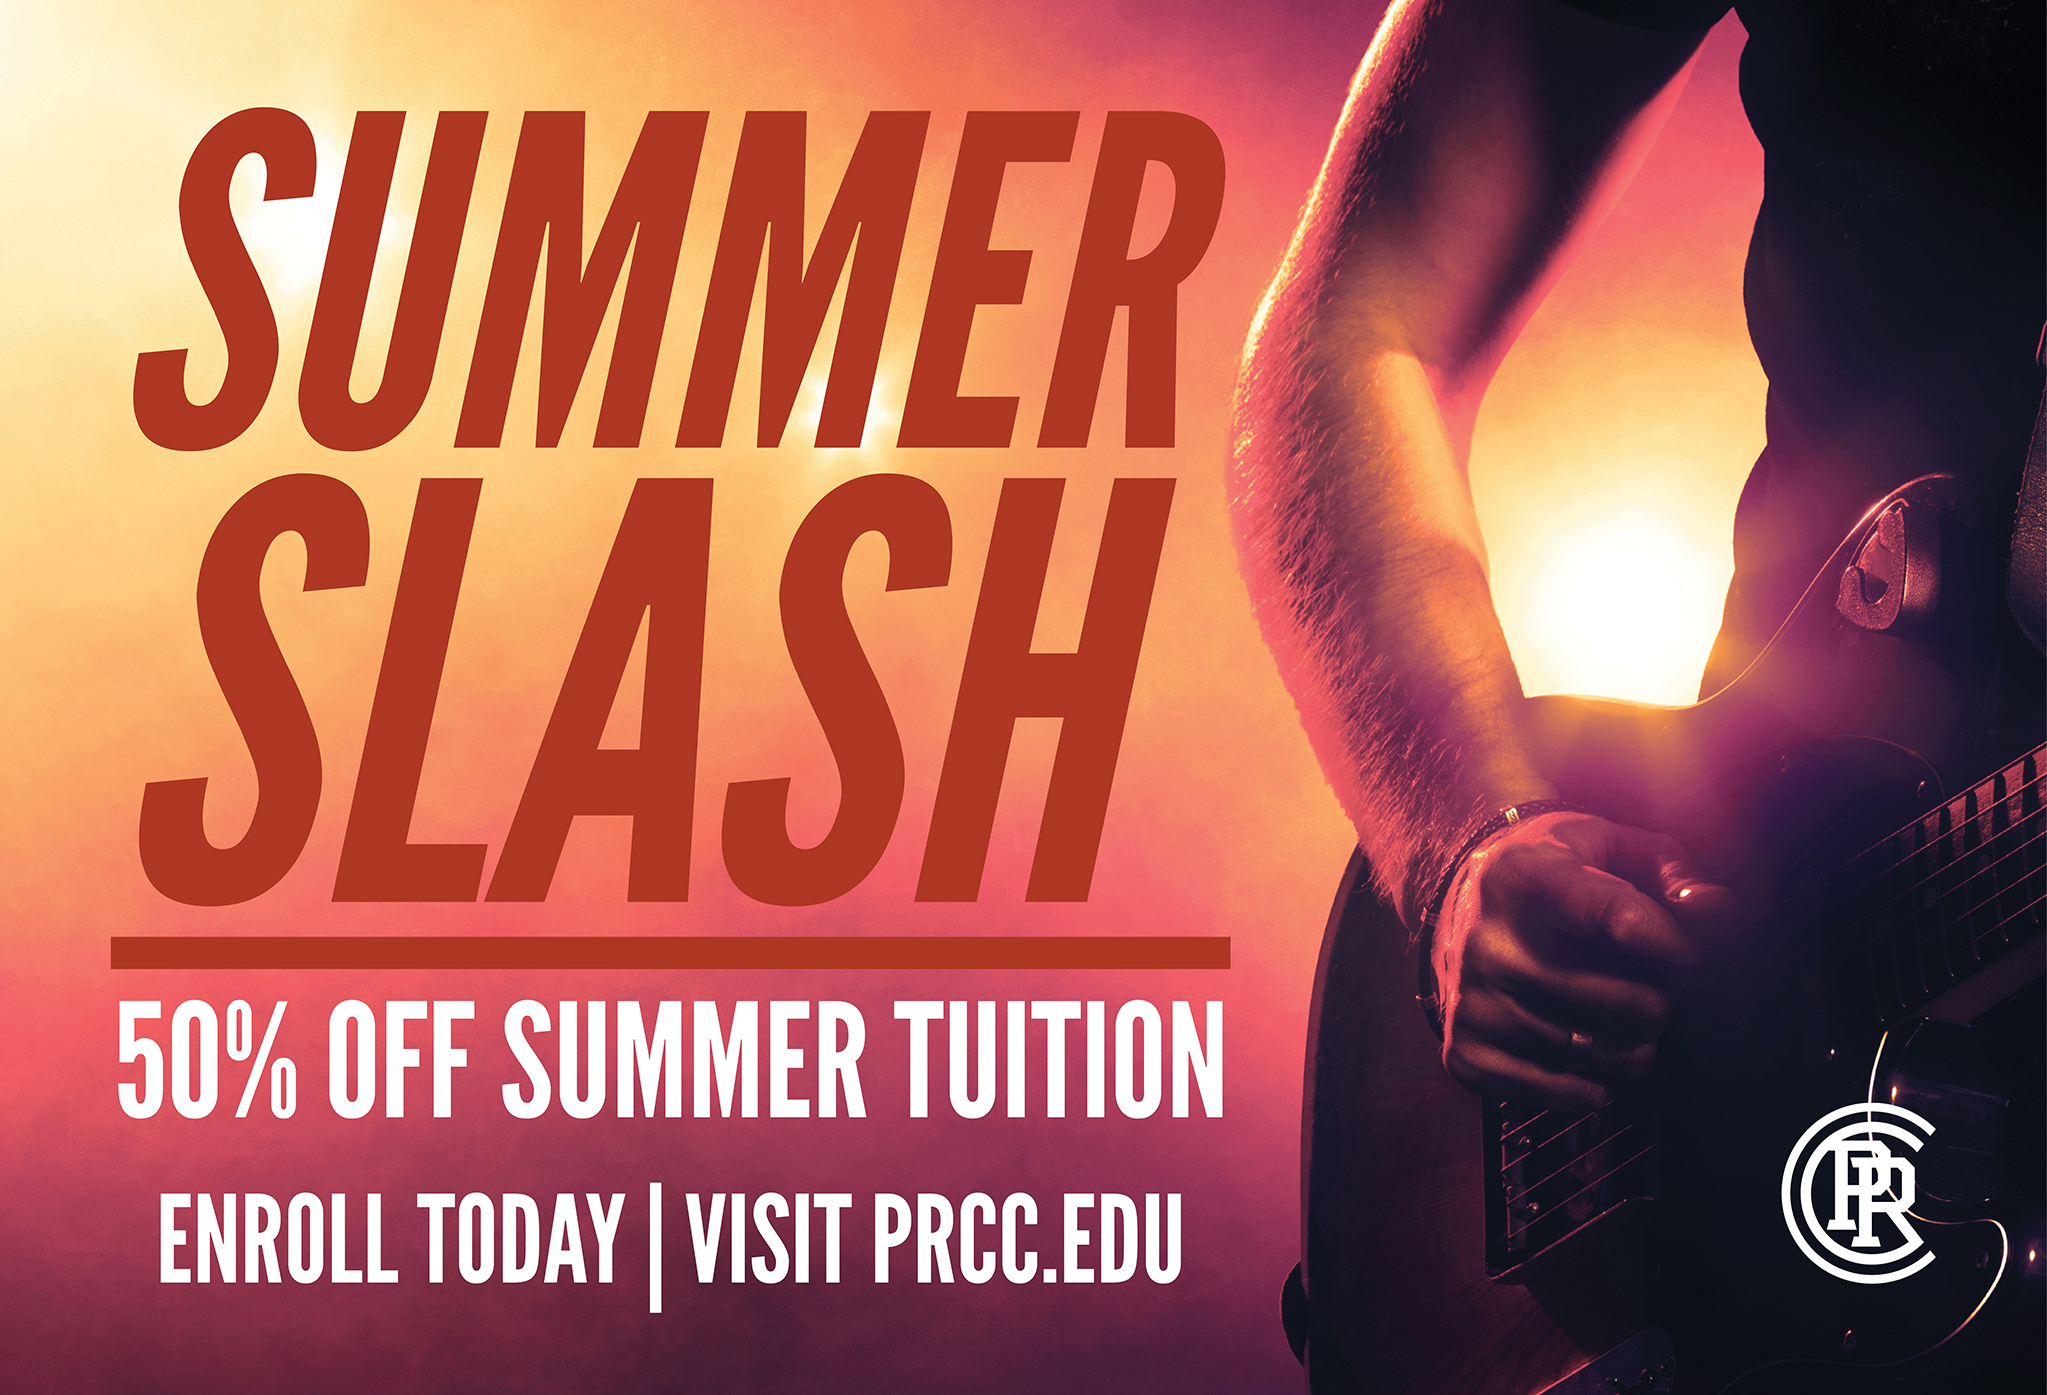 Half off Summer Tuition